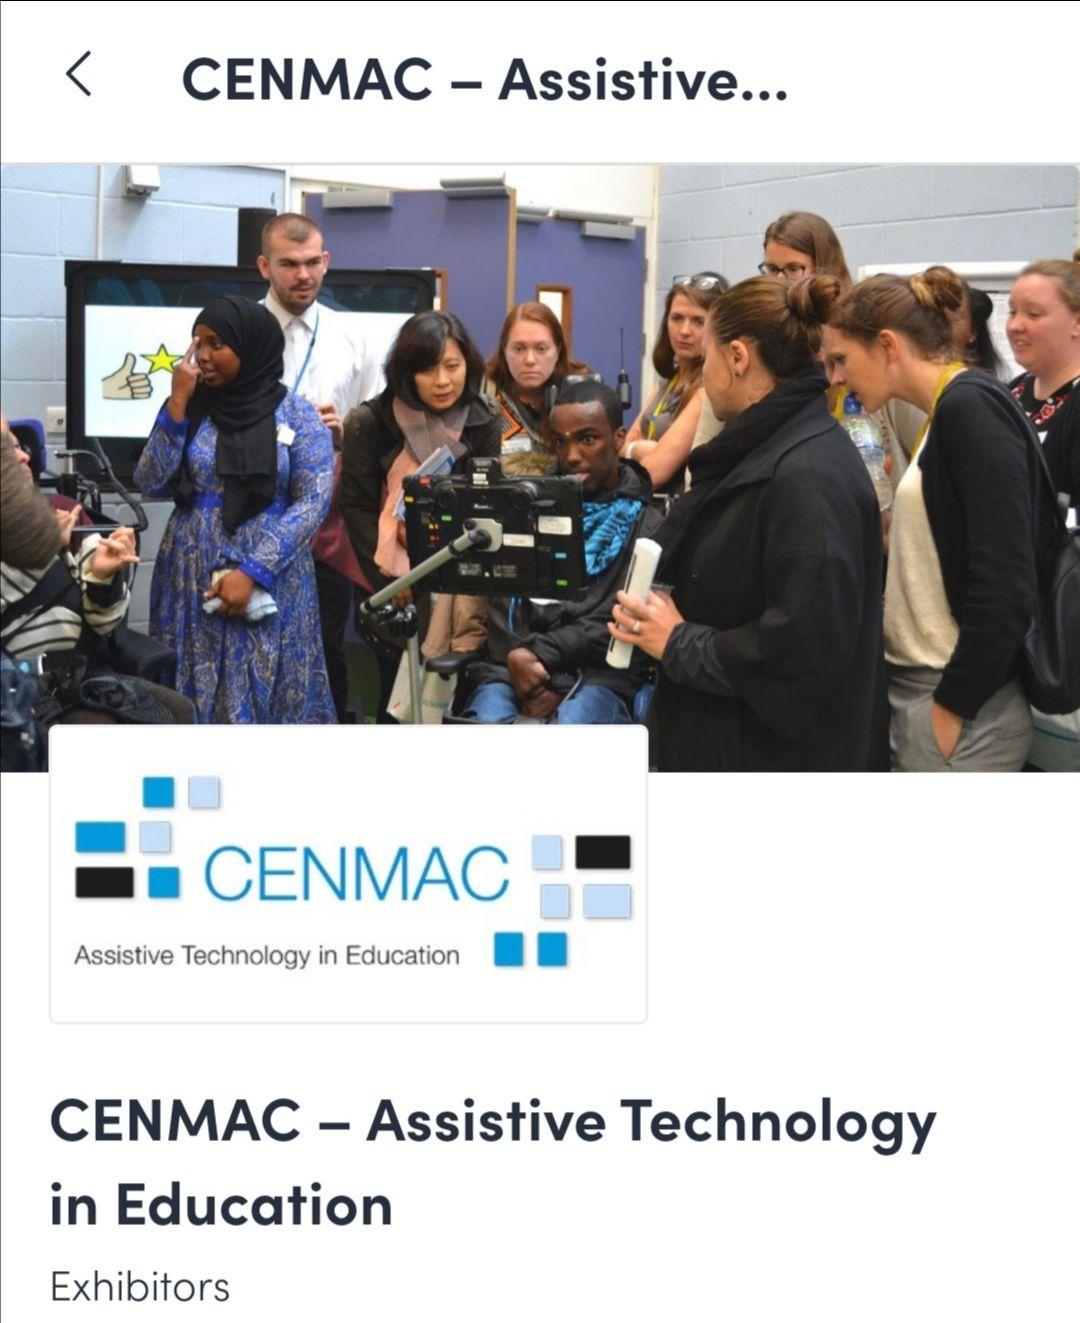 graphic with image of people around a man in a wheelchair and the text CENMAC